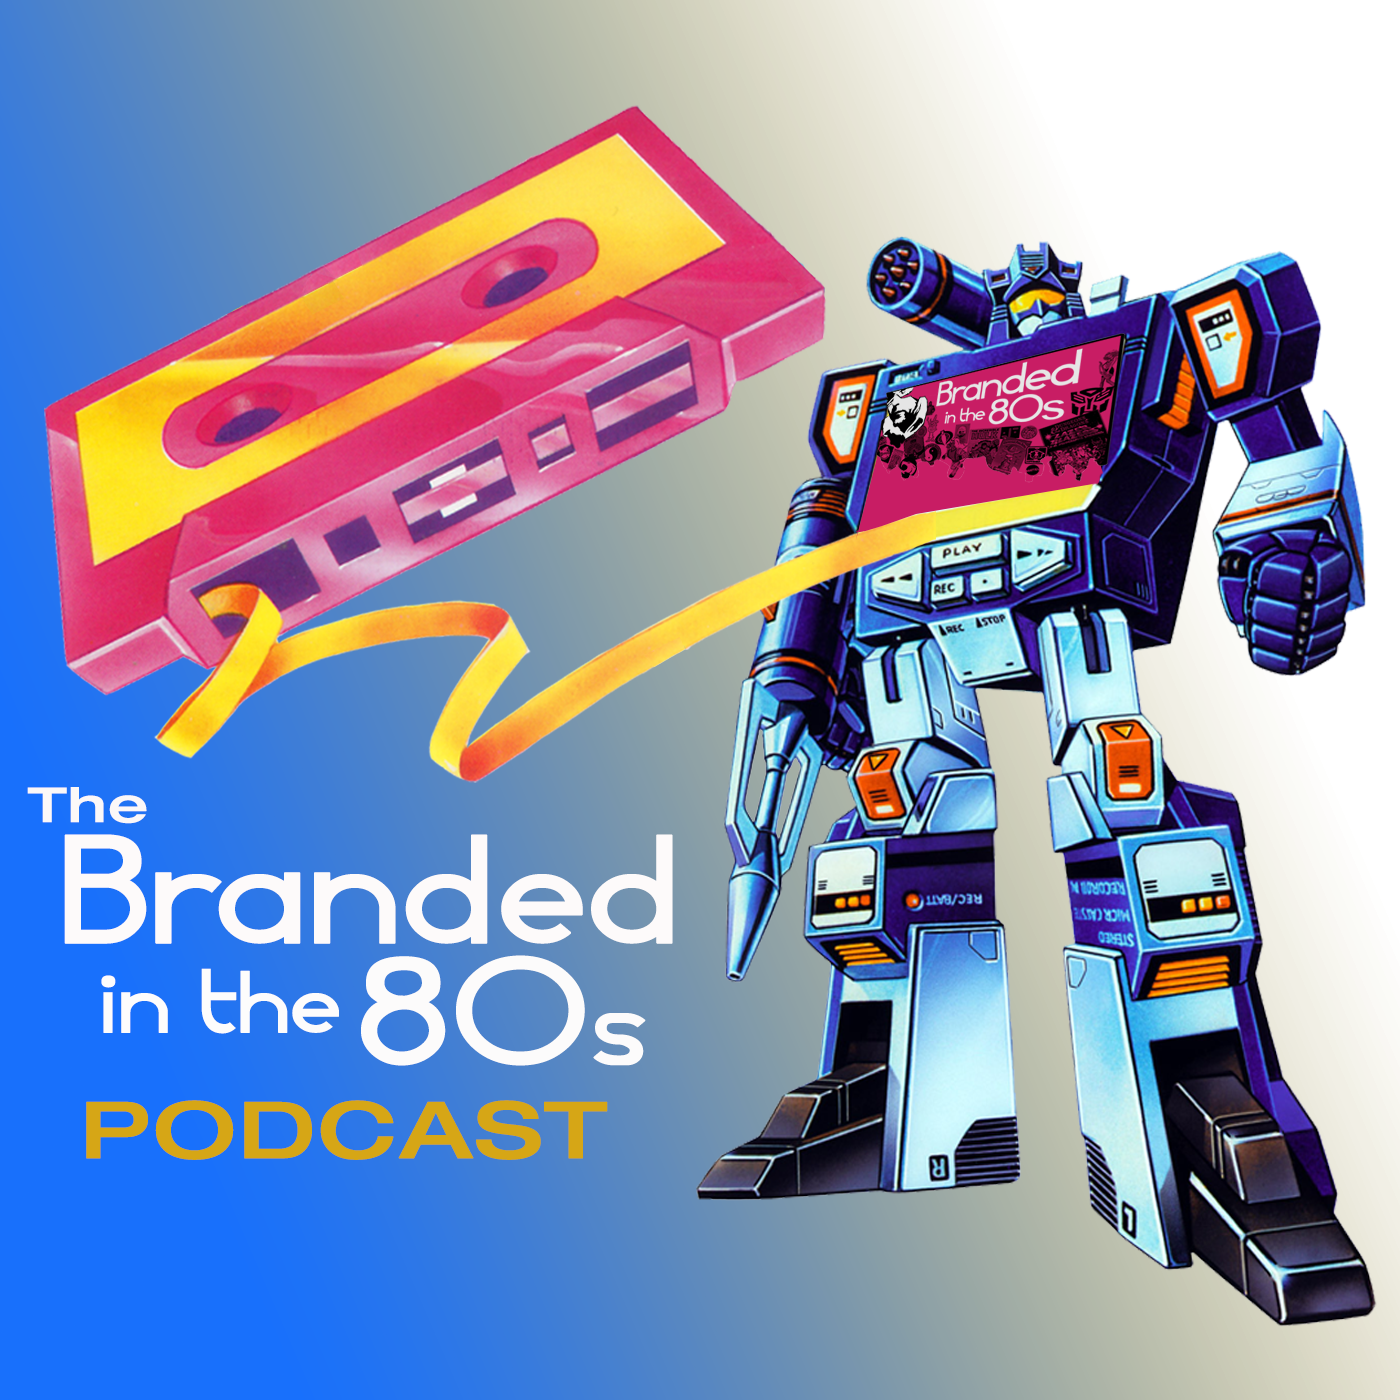 Branded in the 80s Podcast show art